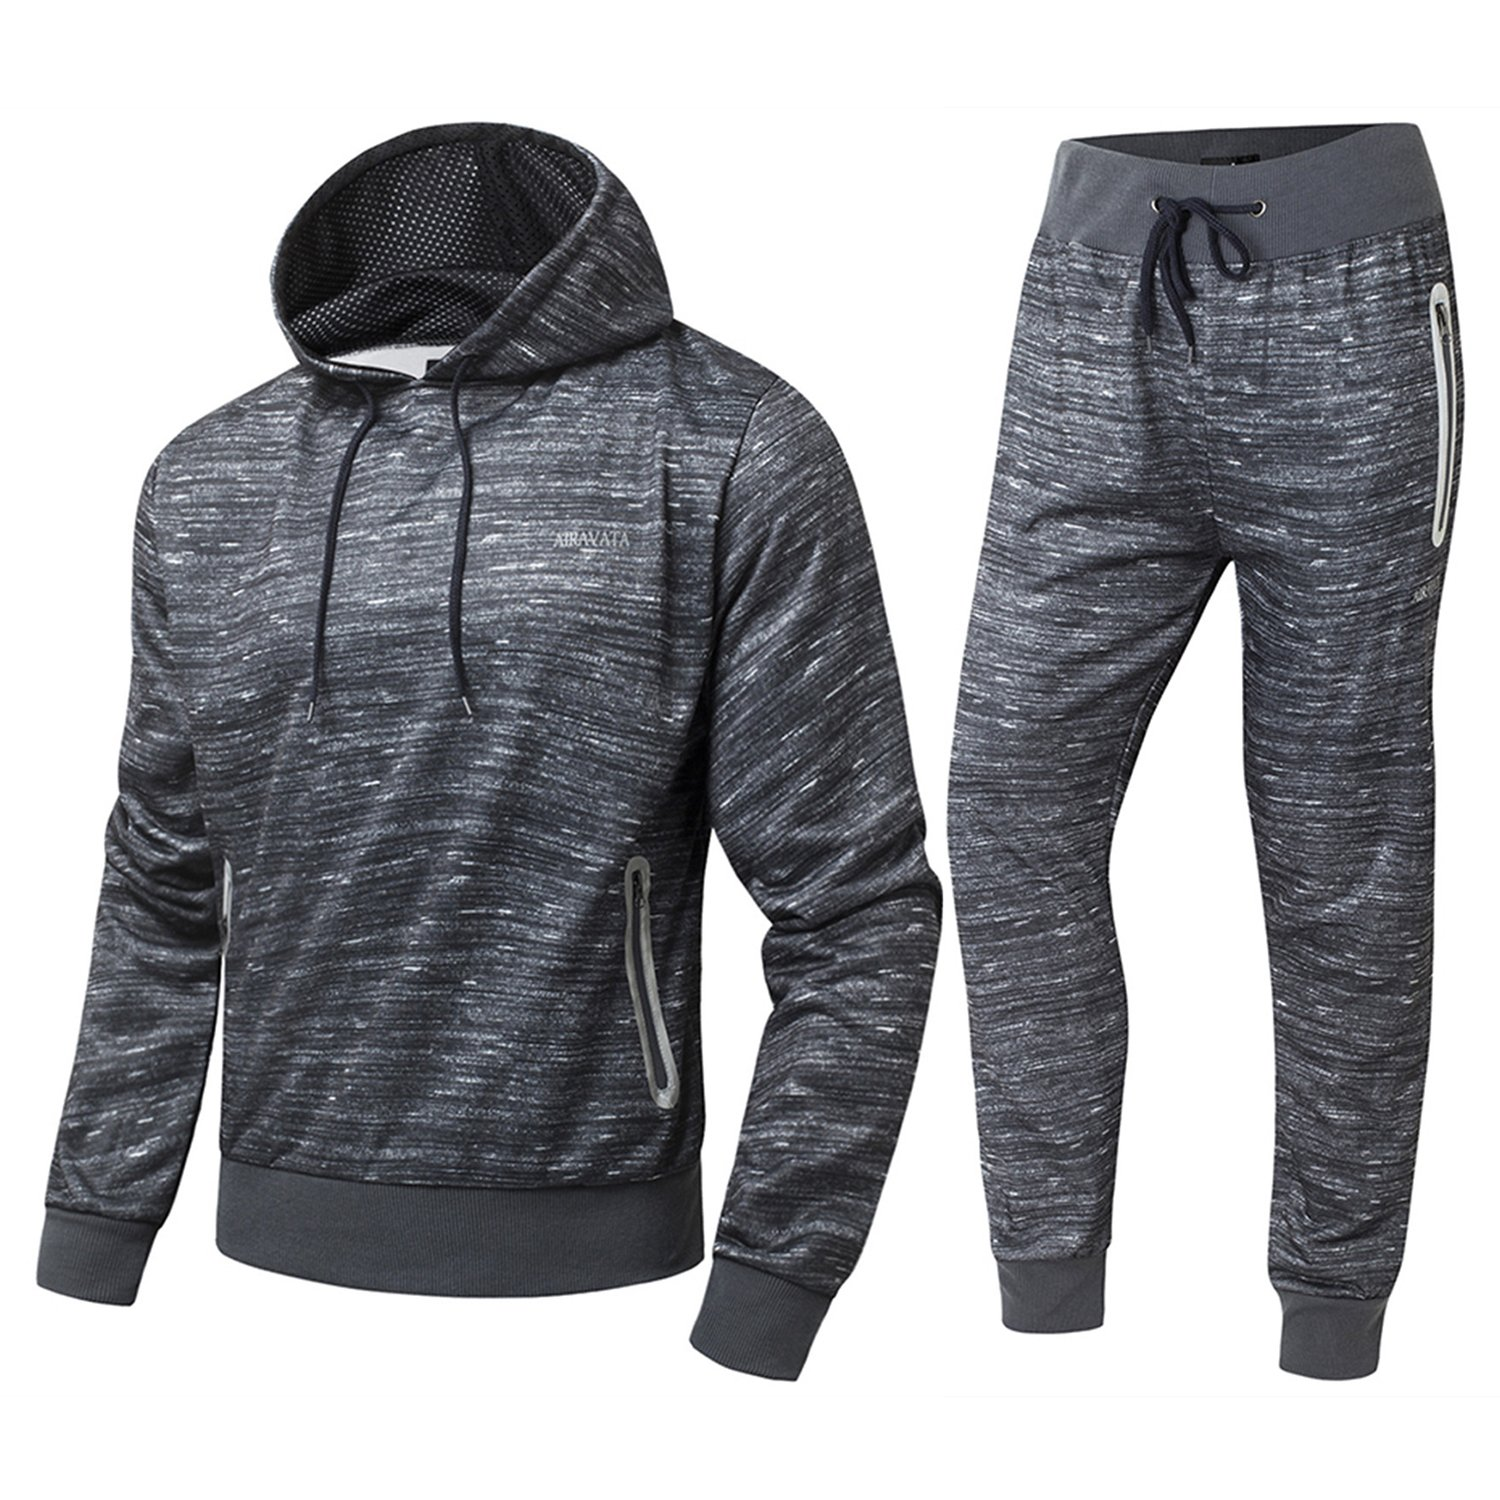 FZDX Men's Jogging Full Tracksuit Pullover Camouflage Hoodies Fleece Joggers Set DX3021-5008